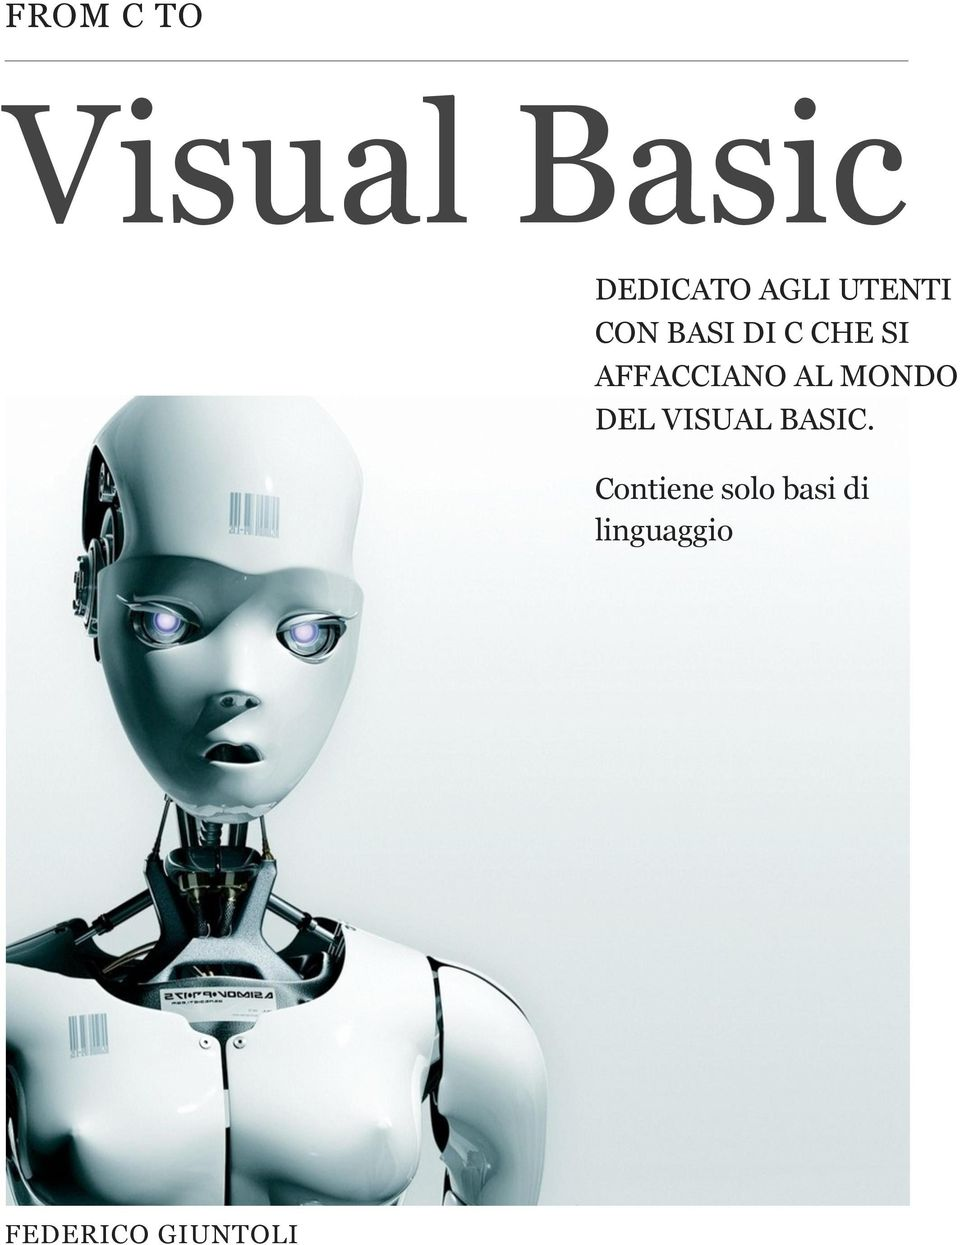 AL MONDO DEL VISUAL BASIC.